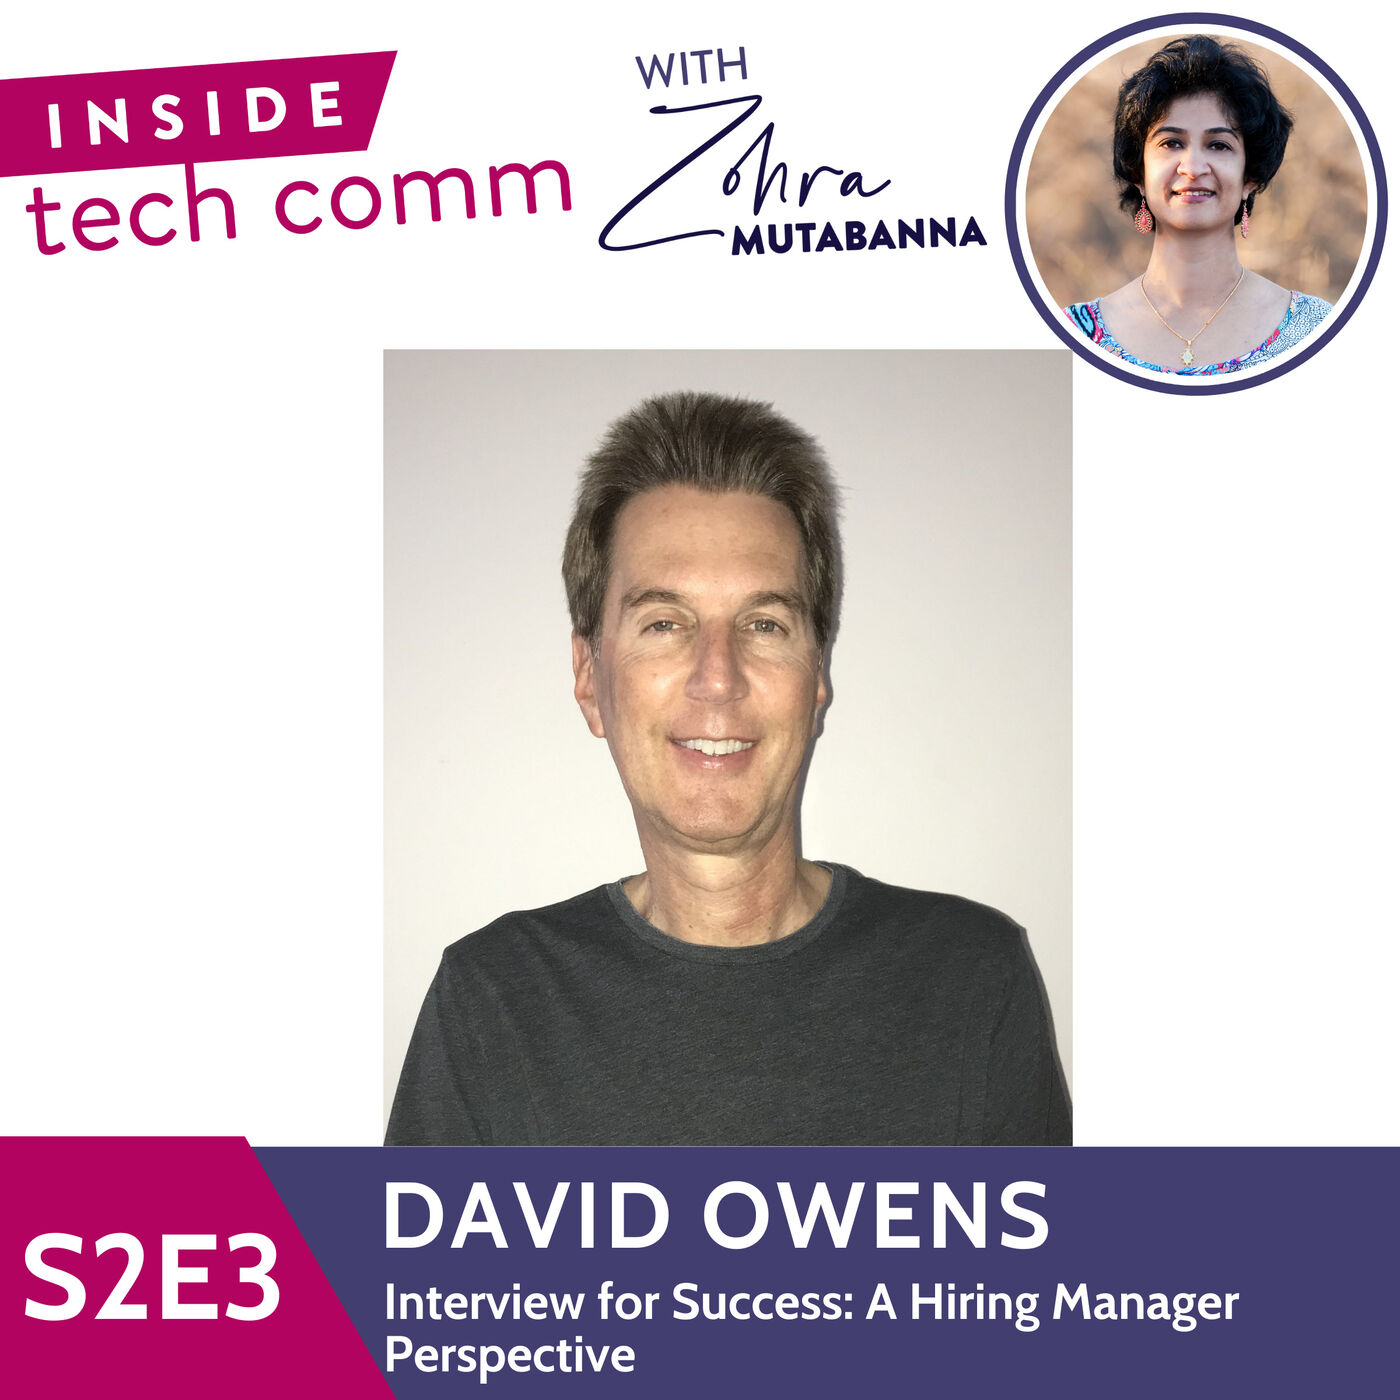 S2E3 Interview for Success: A Hiring Manager Perspective with David Owens